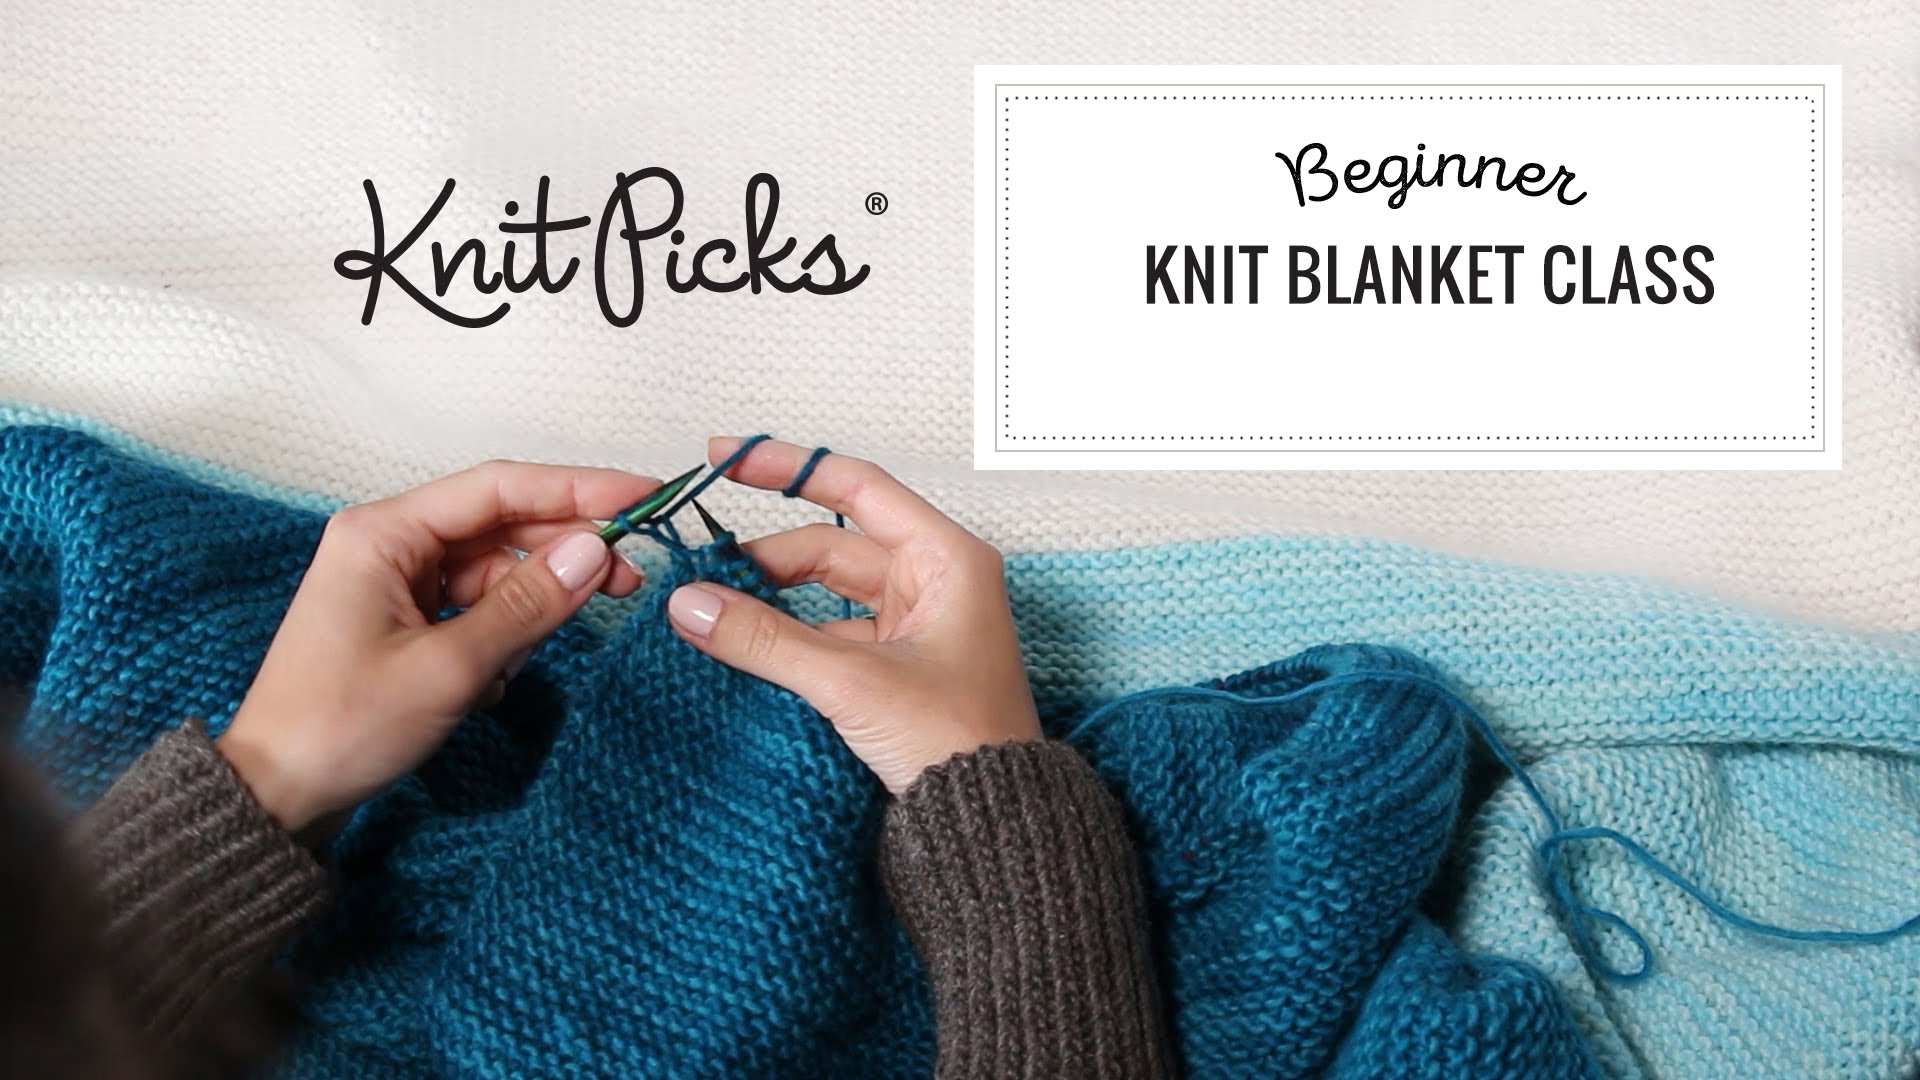 Knit Beginner Blanket Class ArchivesTutorials